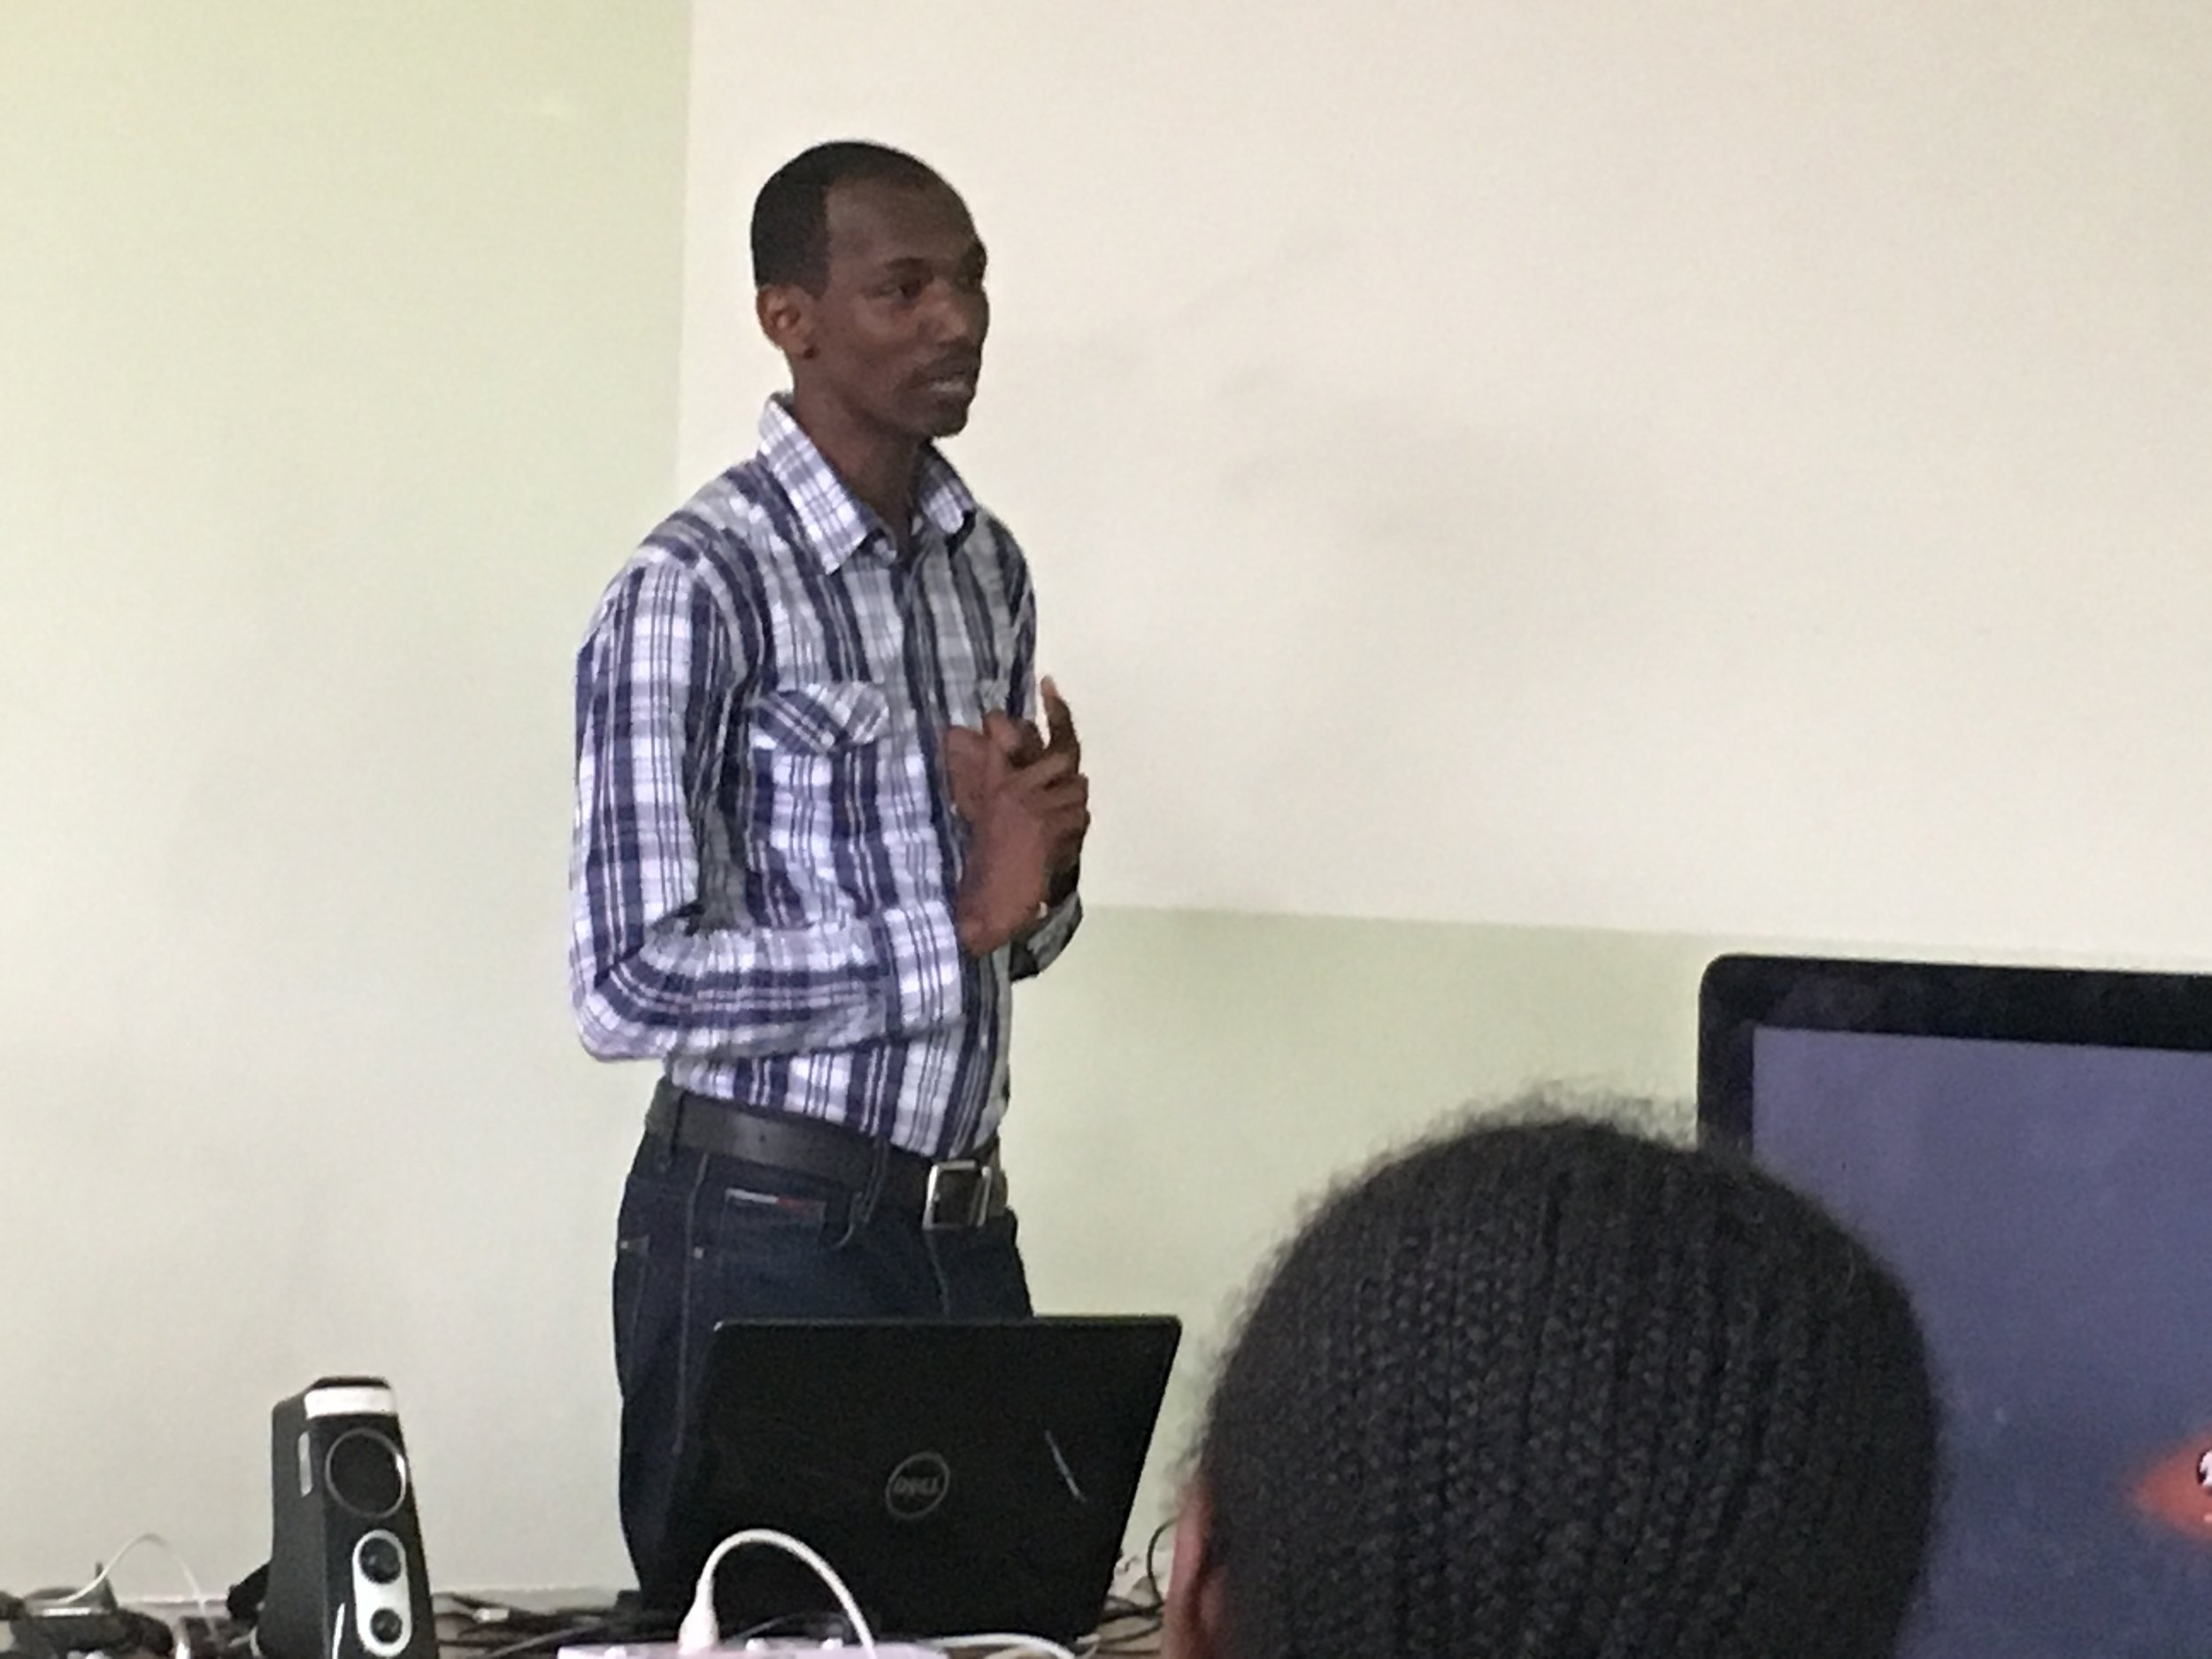 Faustin Niyigena Discussing His Journey To Be A Professional With ADMA Students